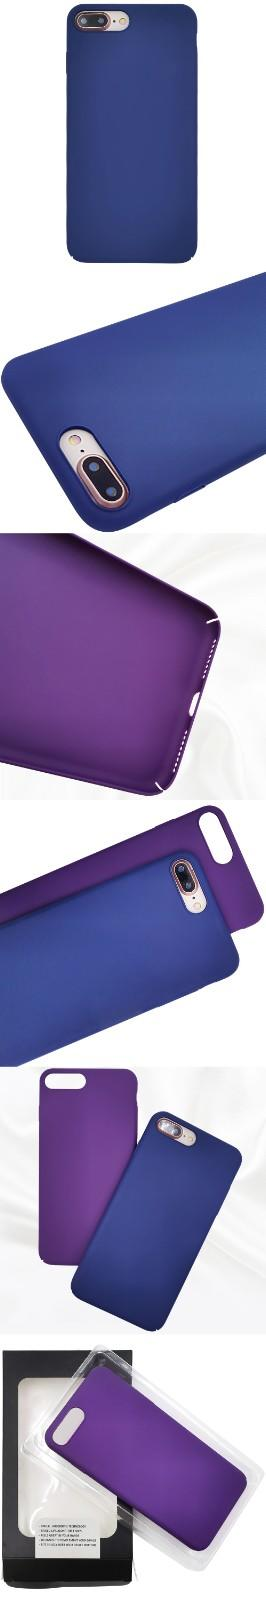 TenChen Tech waterproof phone case customized for sale-1